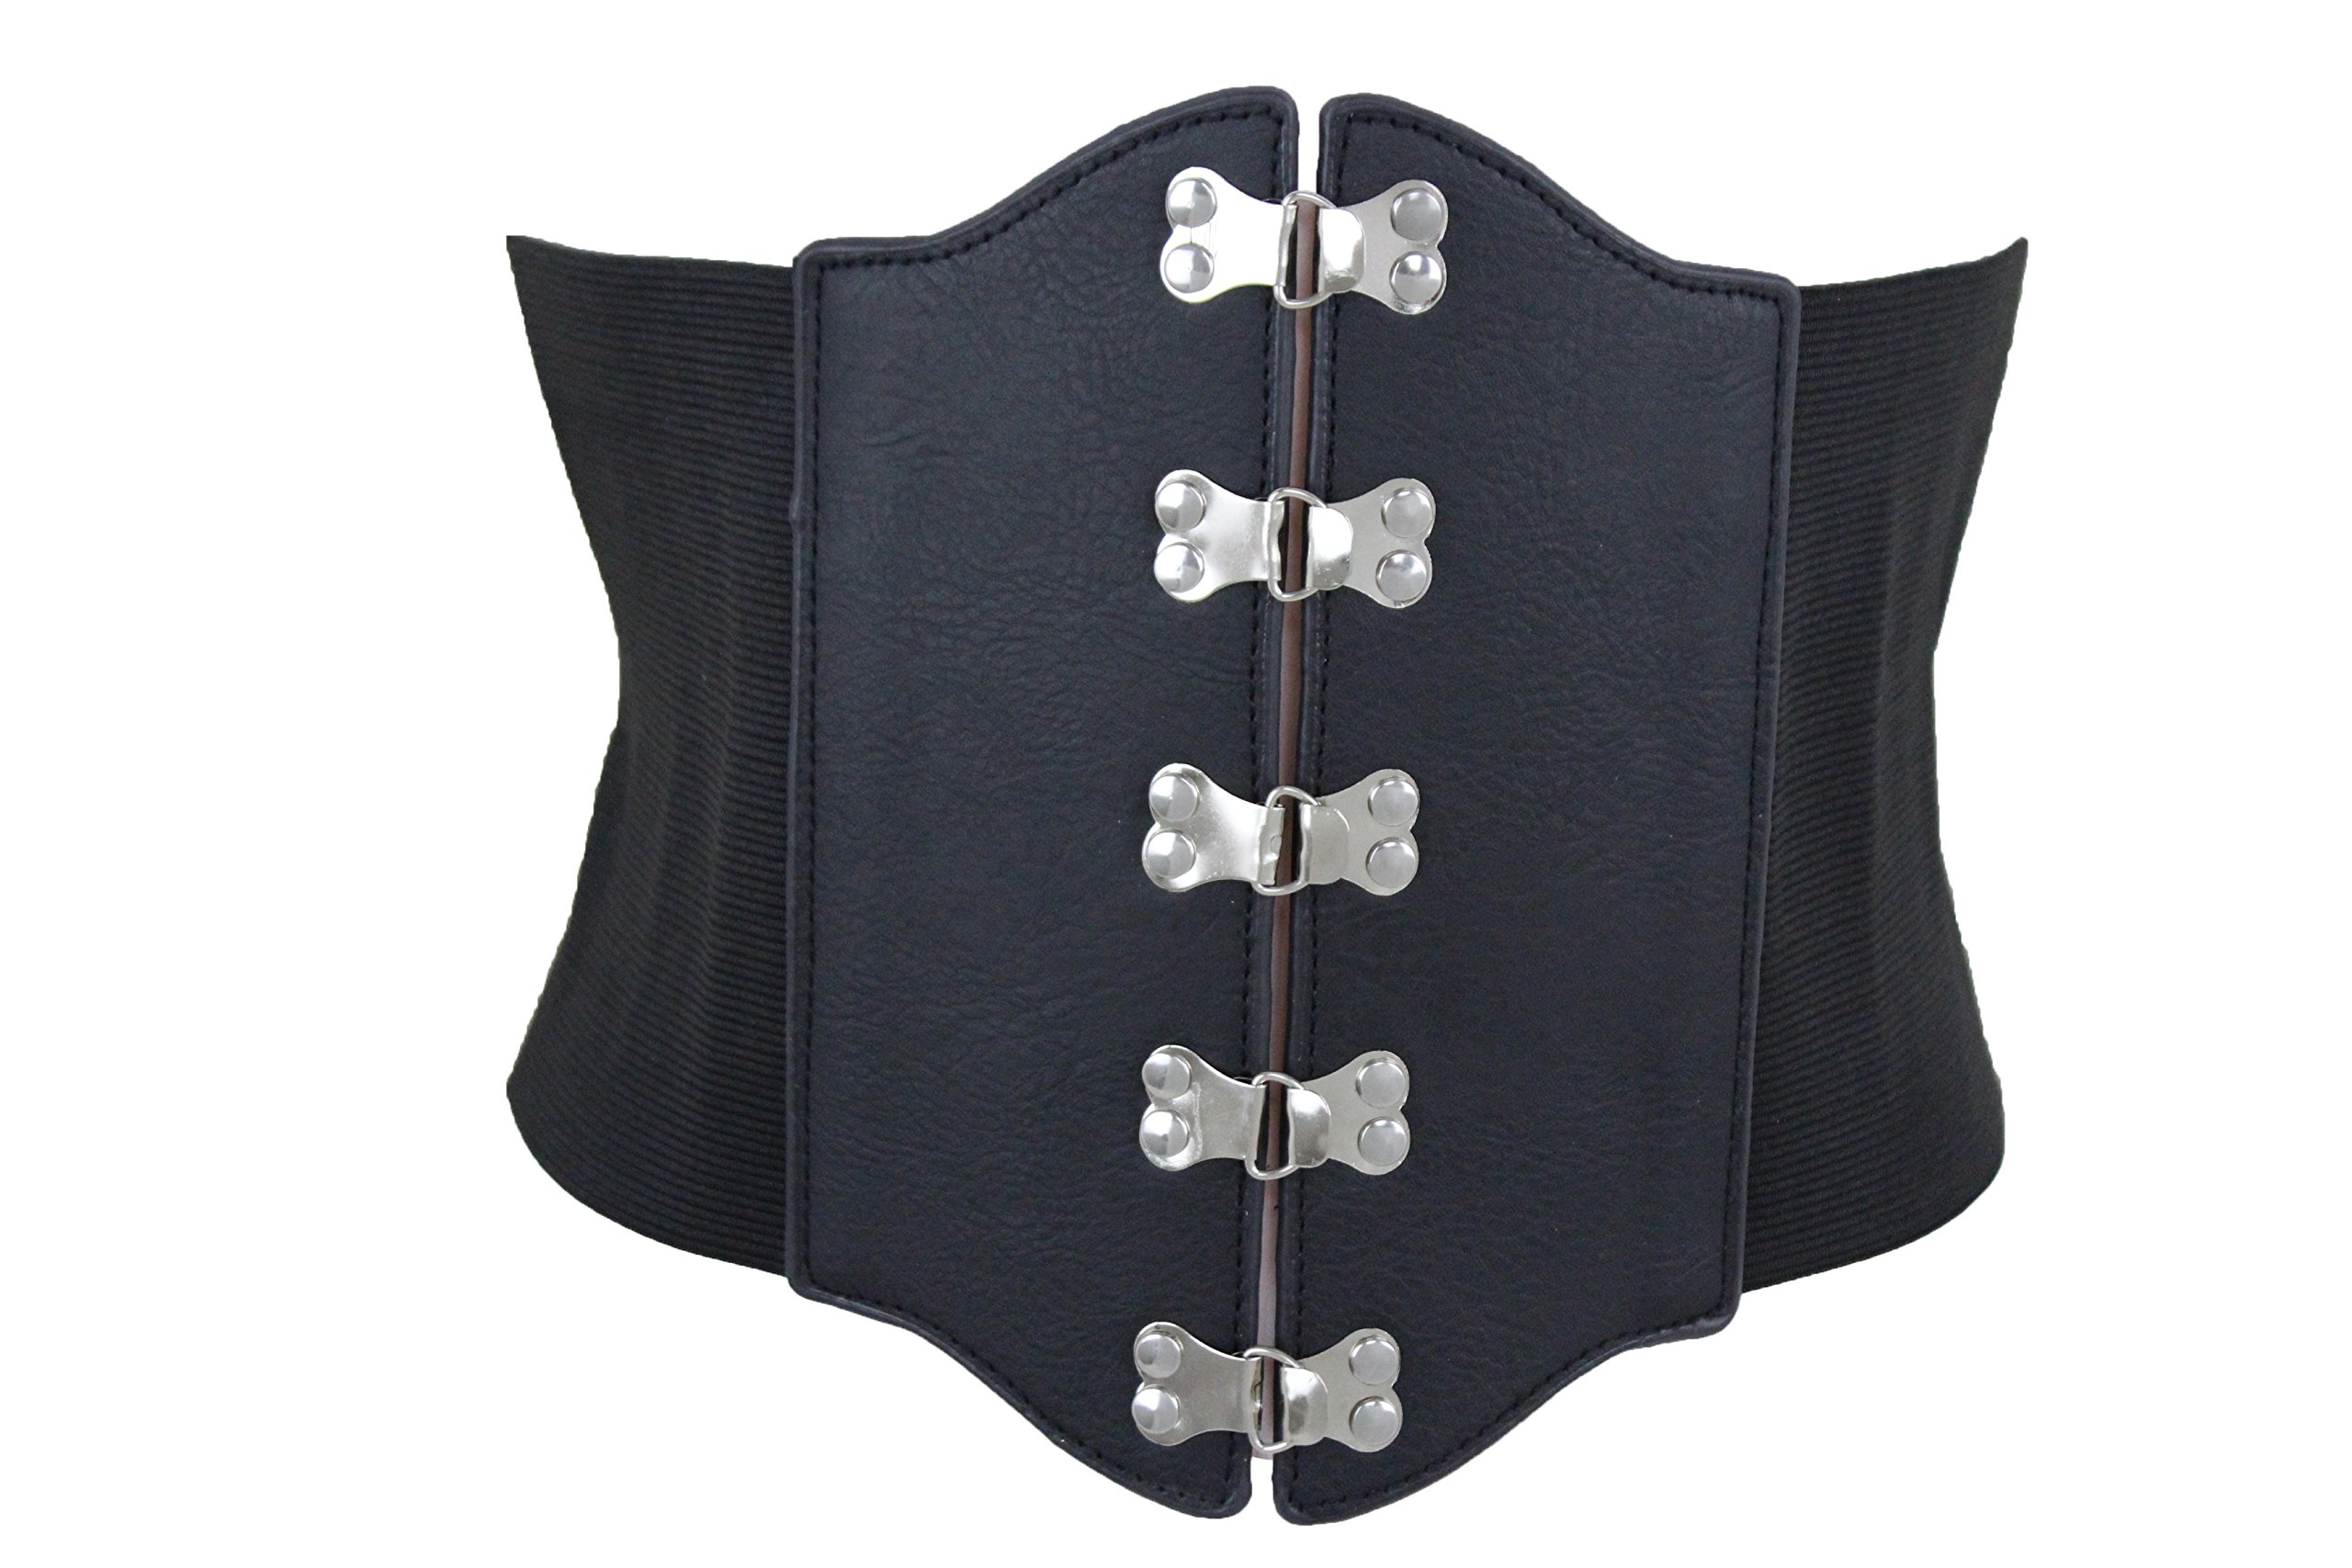 TFJ Women Elastic Extra Wide Fashion Corset Belt High Waist Plus Size M L XL Black